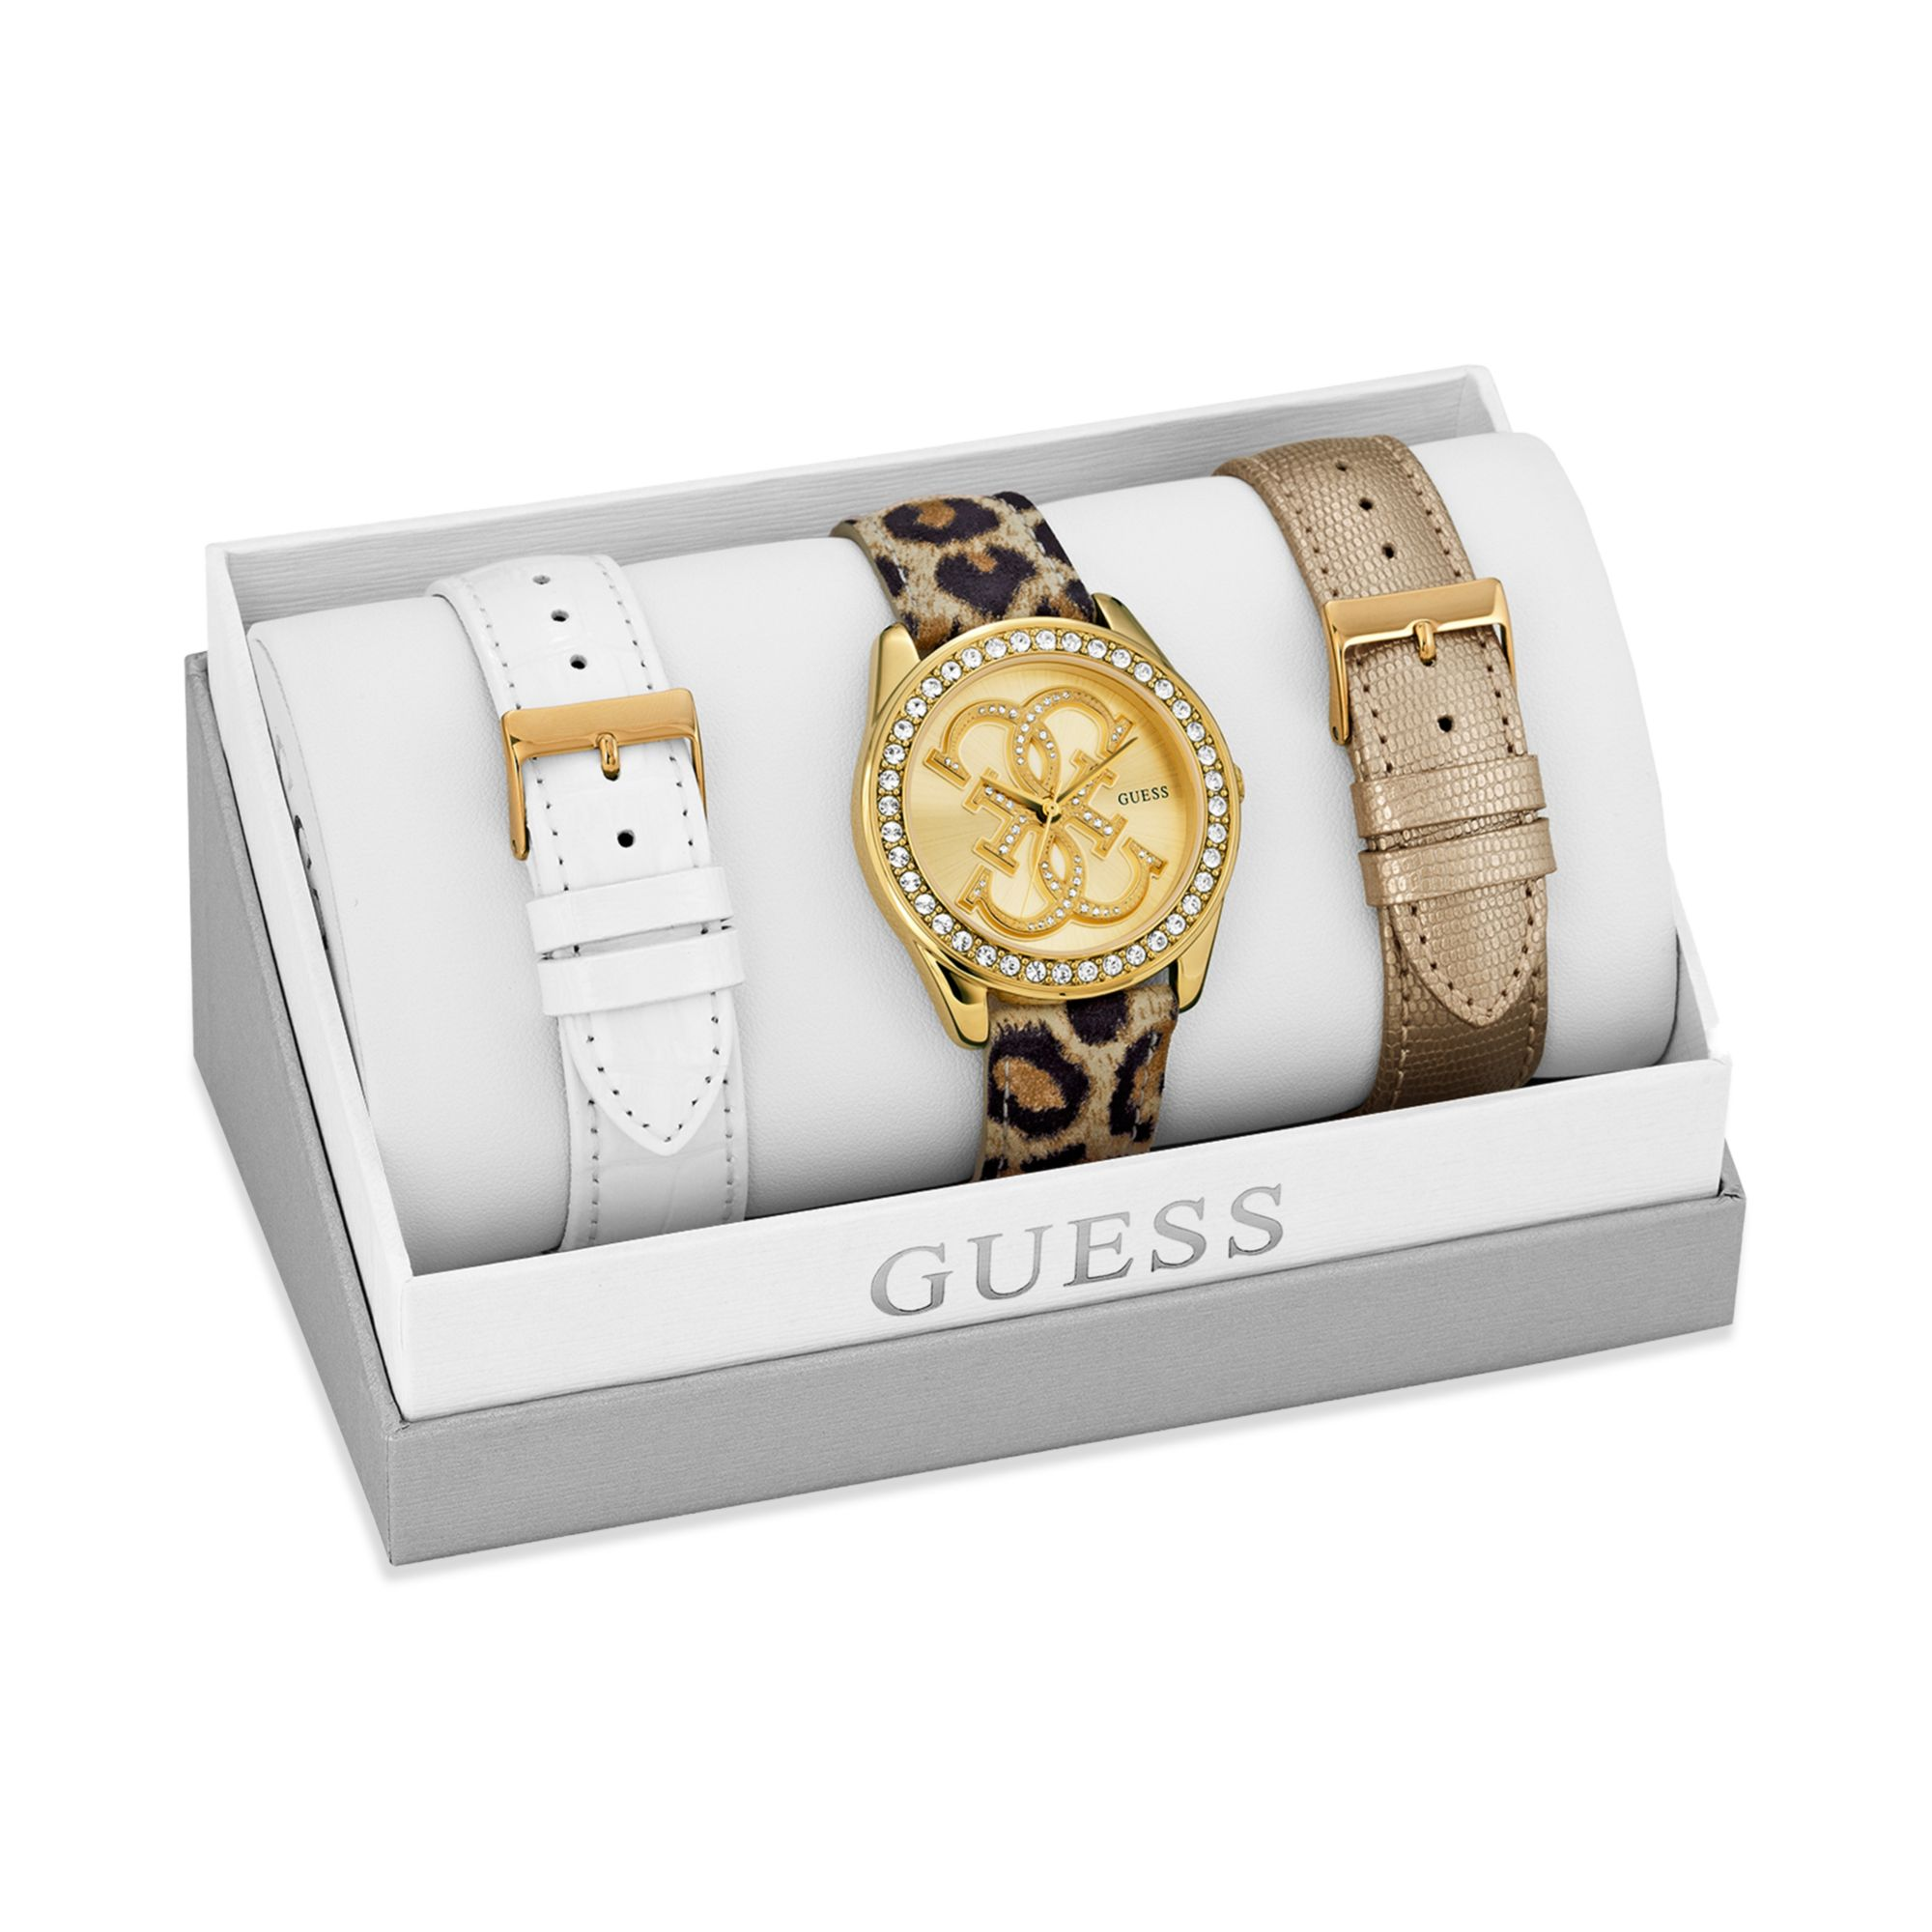 guess watches factory outlet xja8  guess watches ladies leather strap